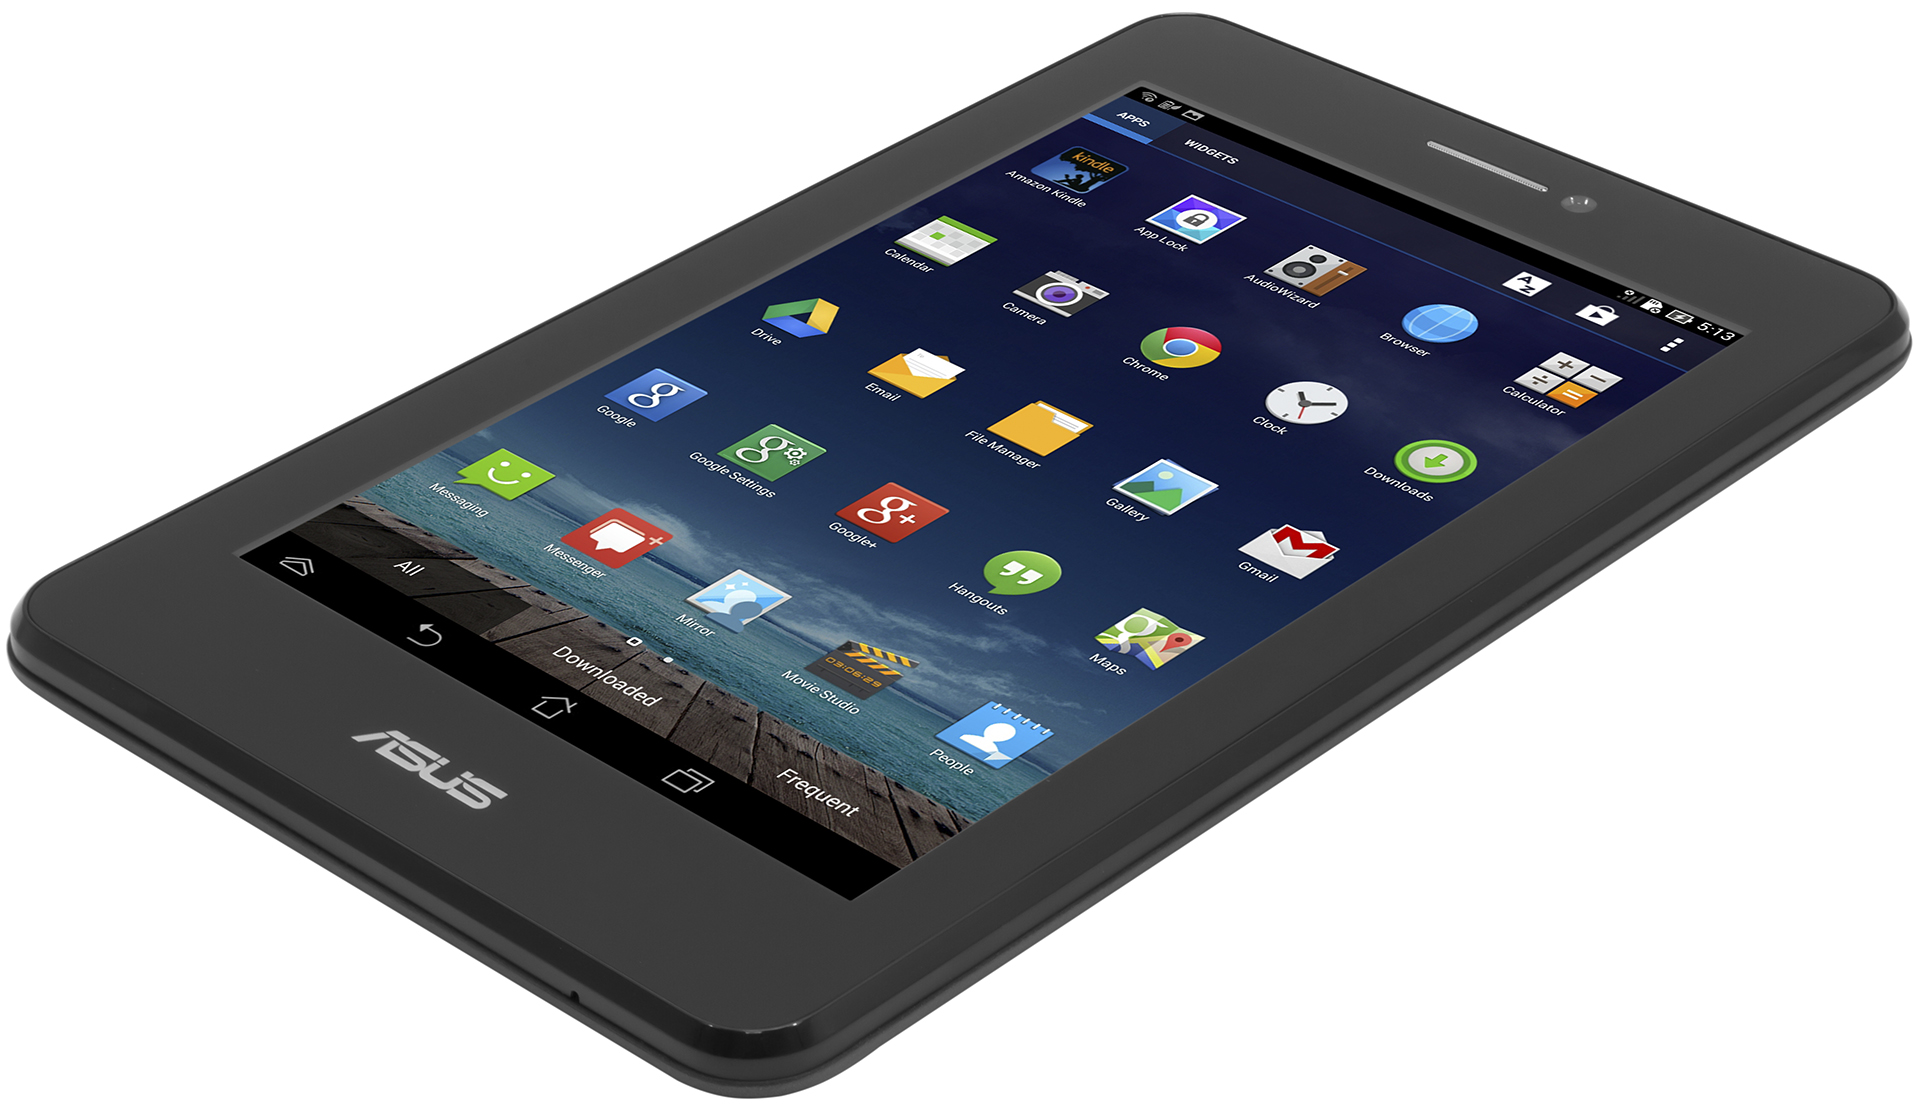 Asus Fonepad 7